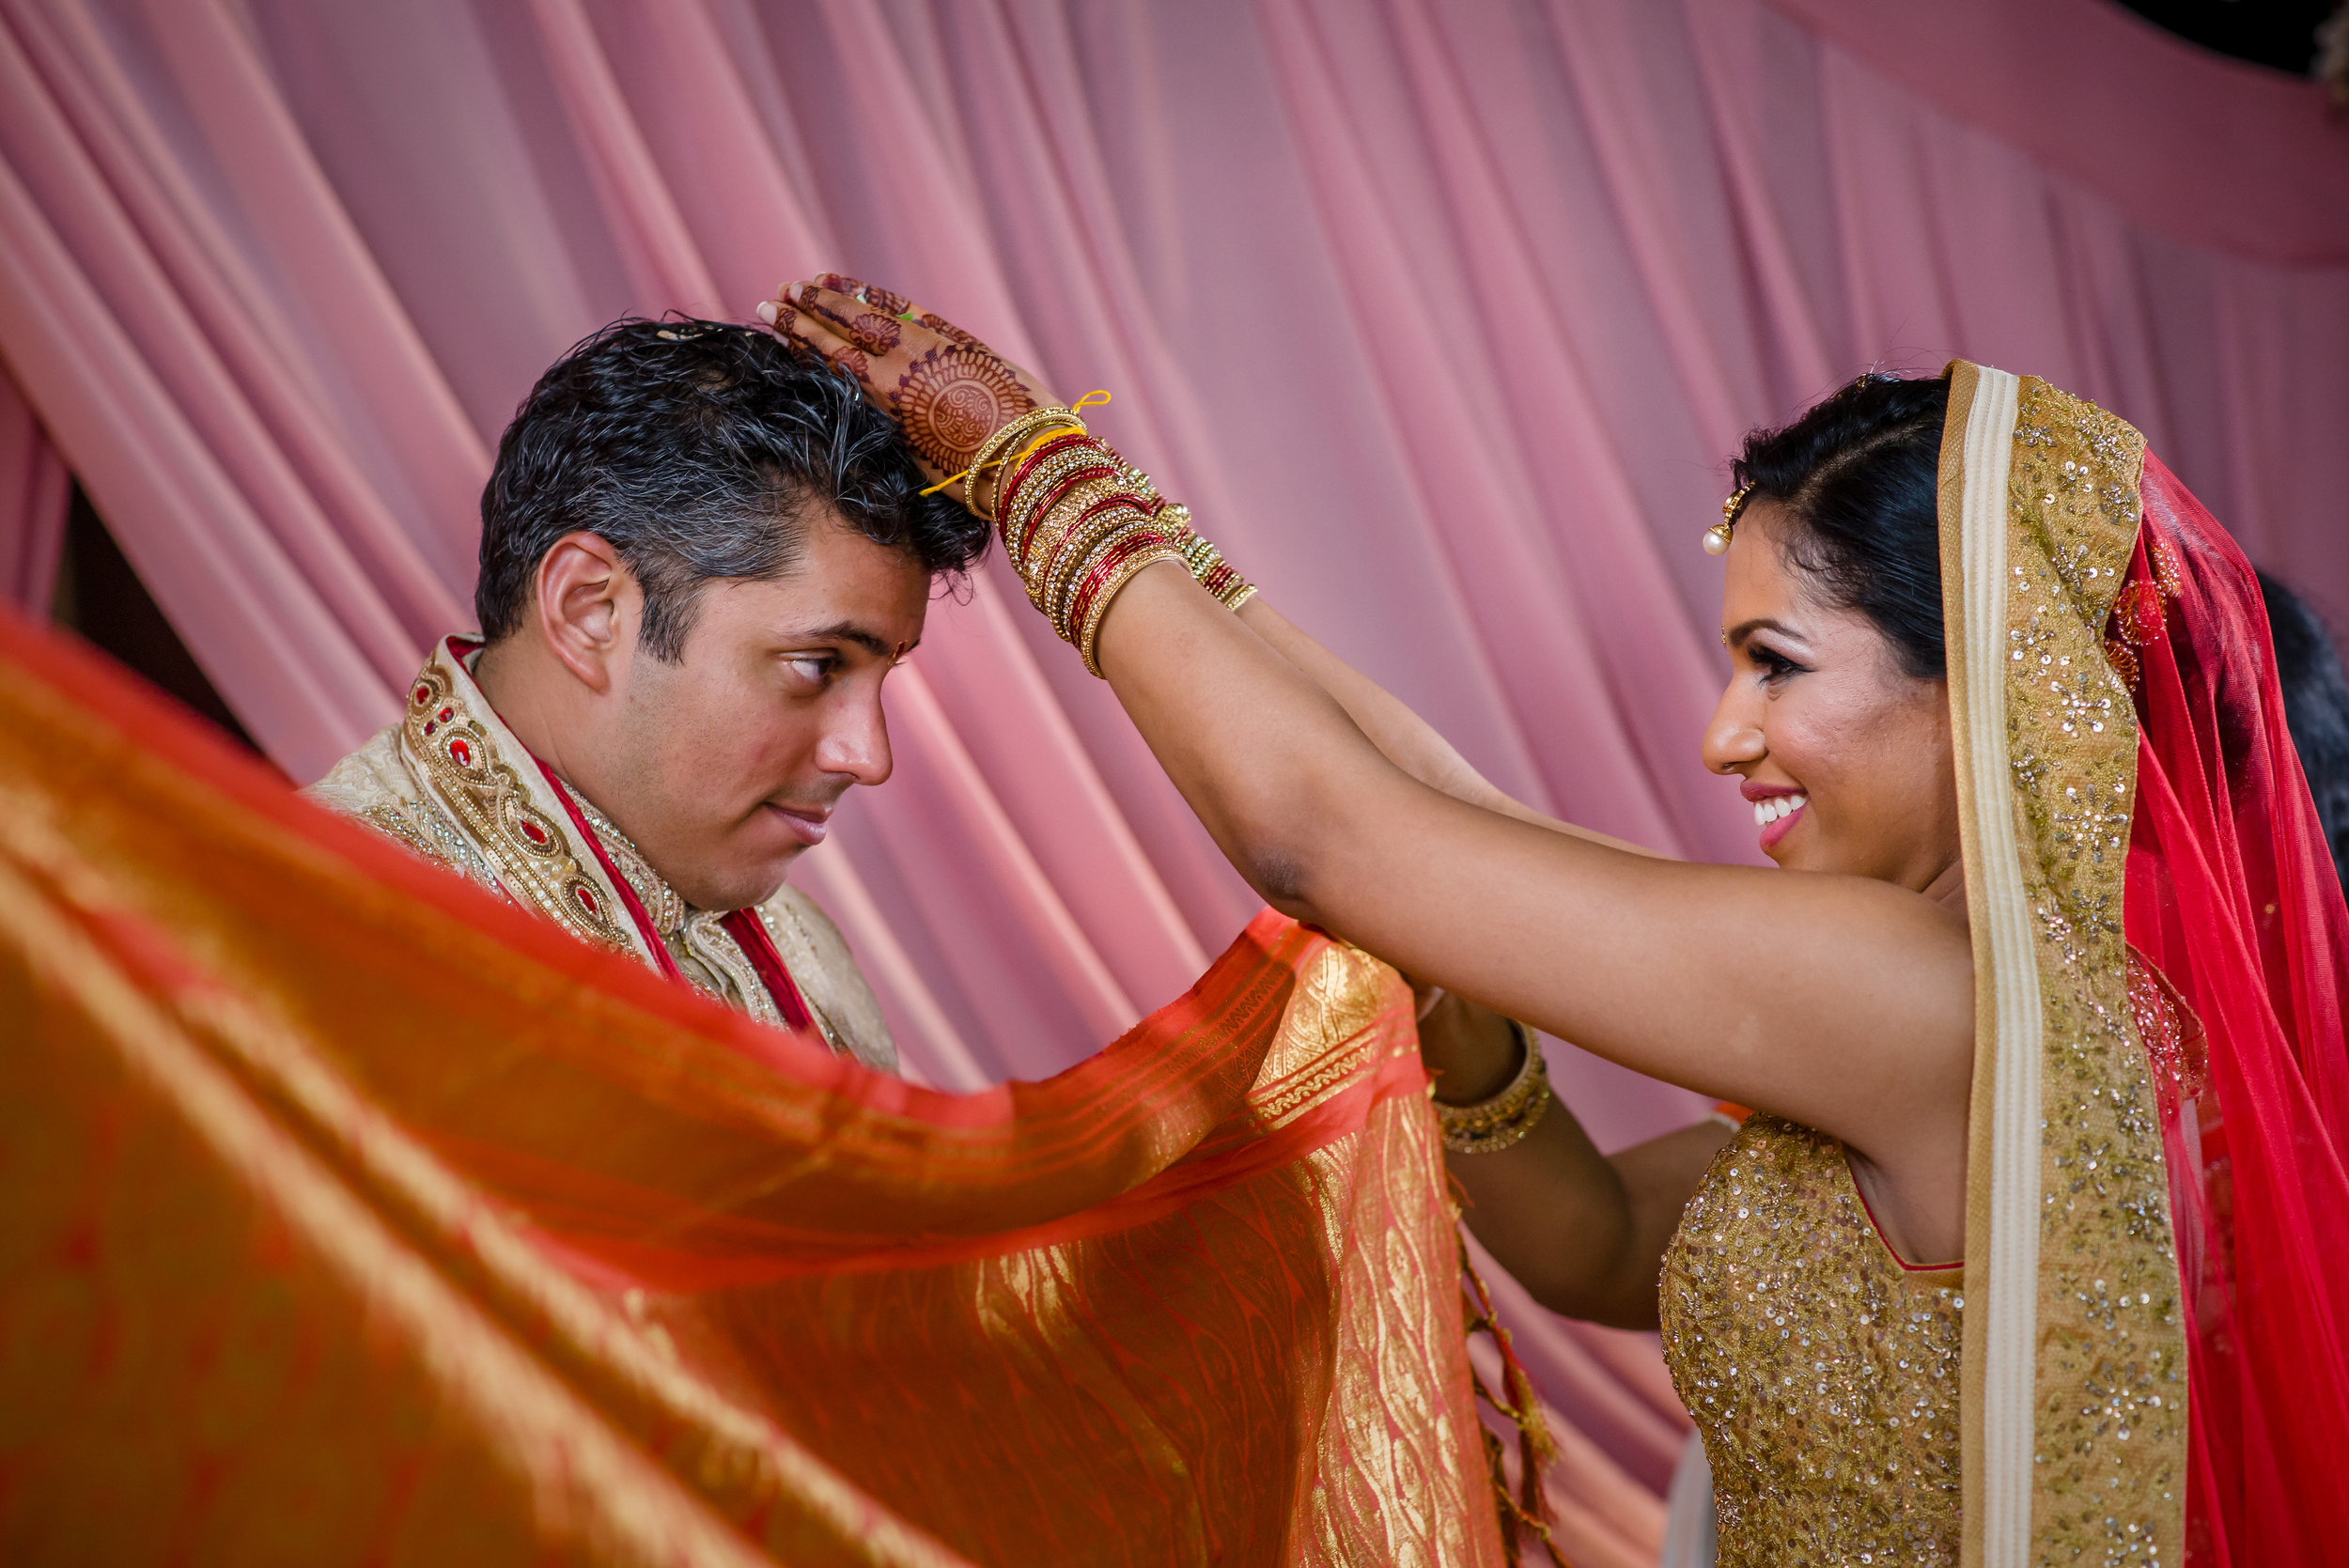 INDIAN BRIDE AND GROOM AT HINDU CEREMONY